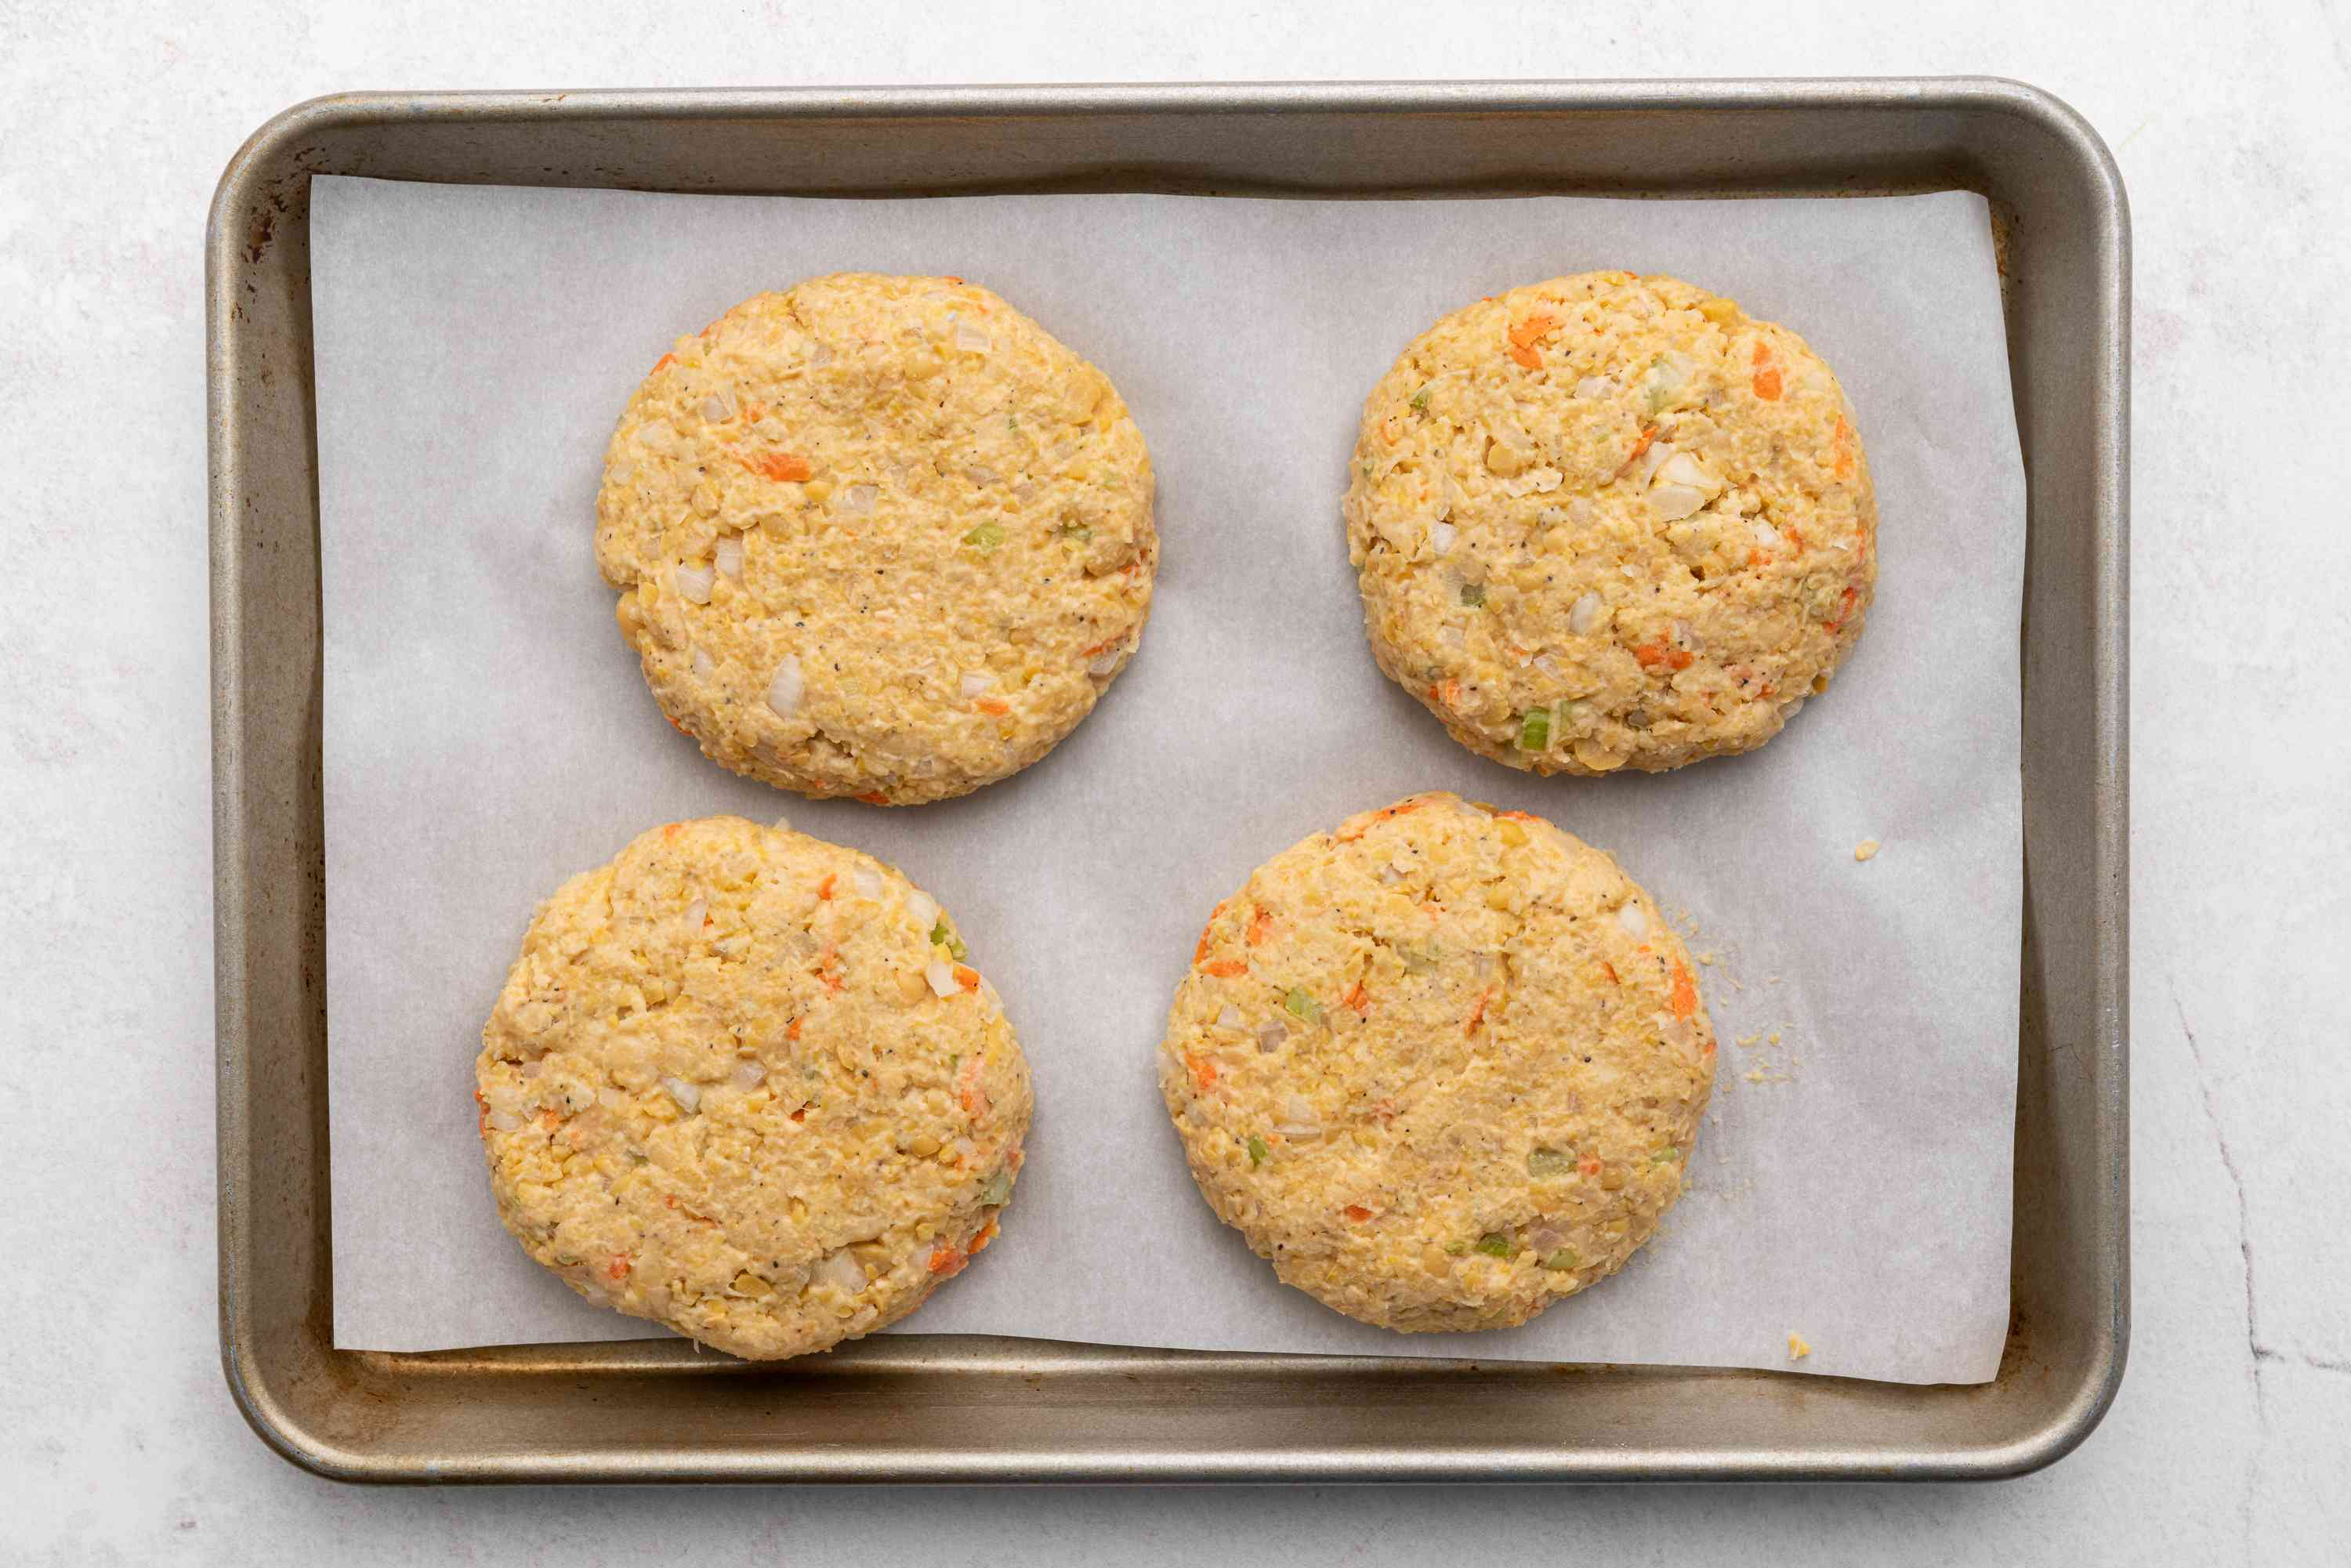 Formed patties on parchment-lined baking sheet